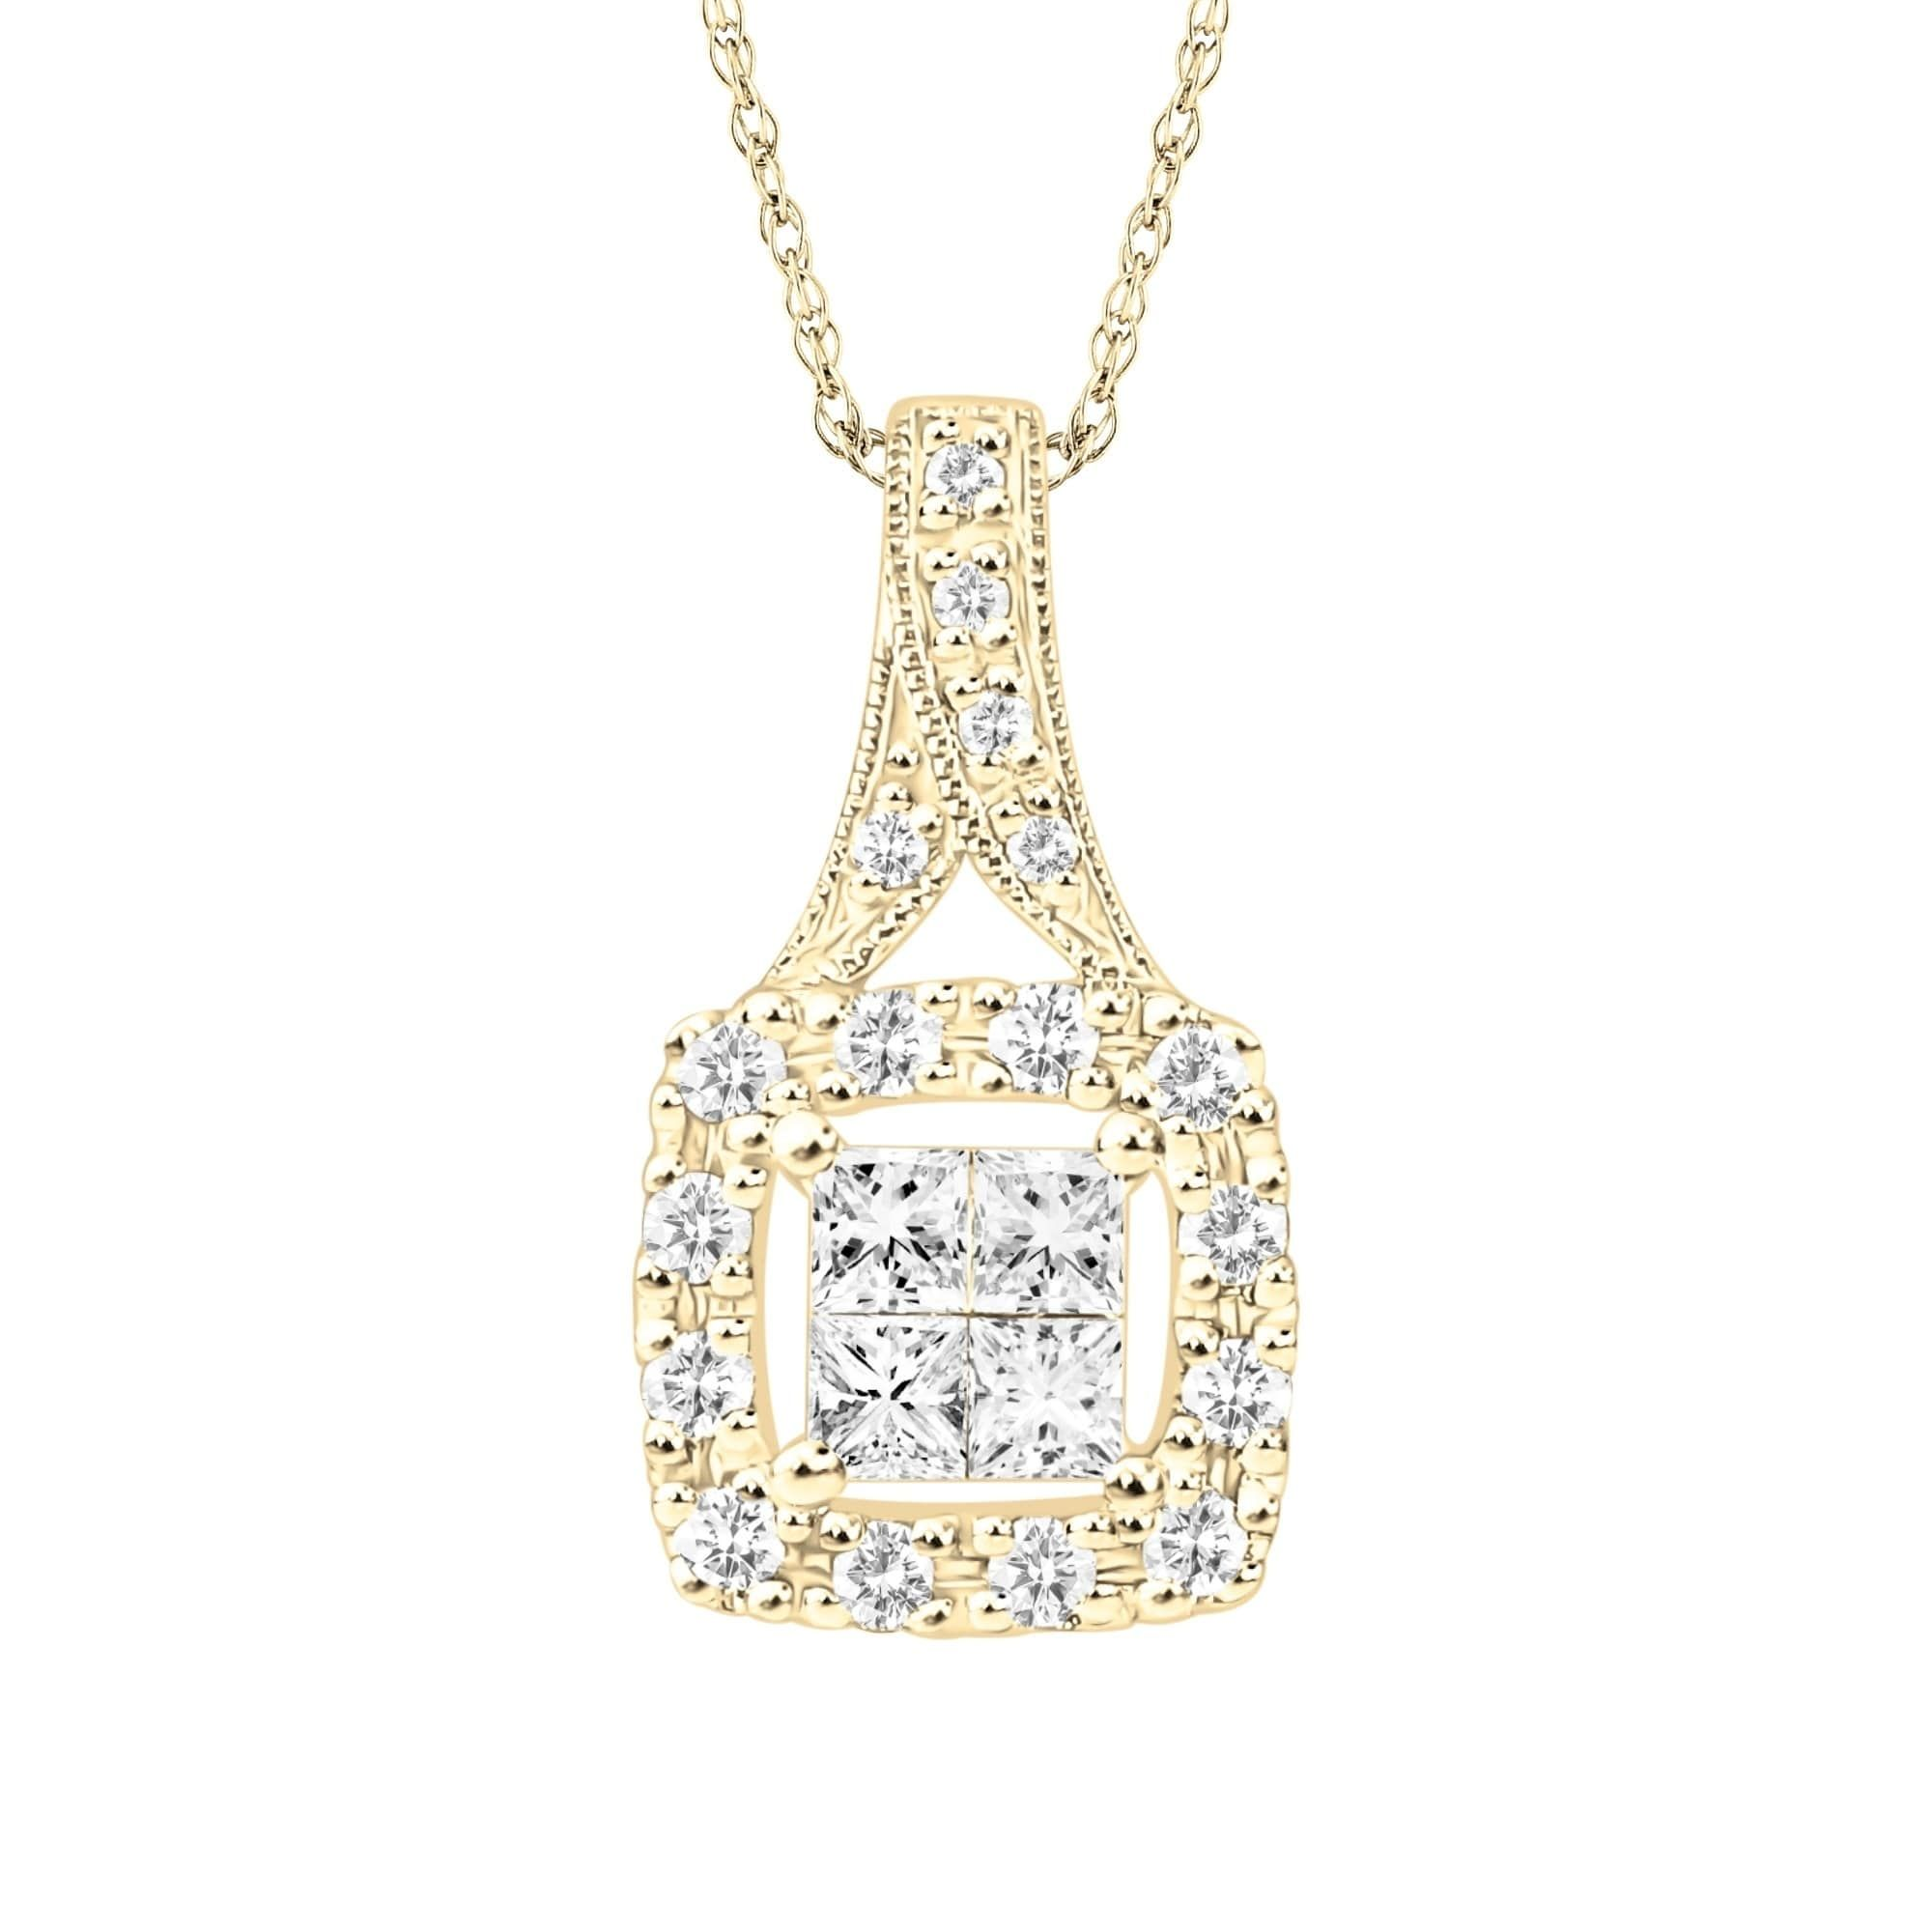 mx jewellery pendant sj sec stone lugaro canadian necklace two diamond wg